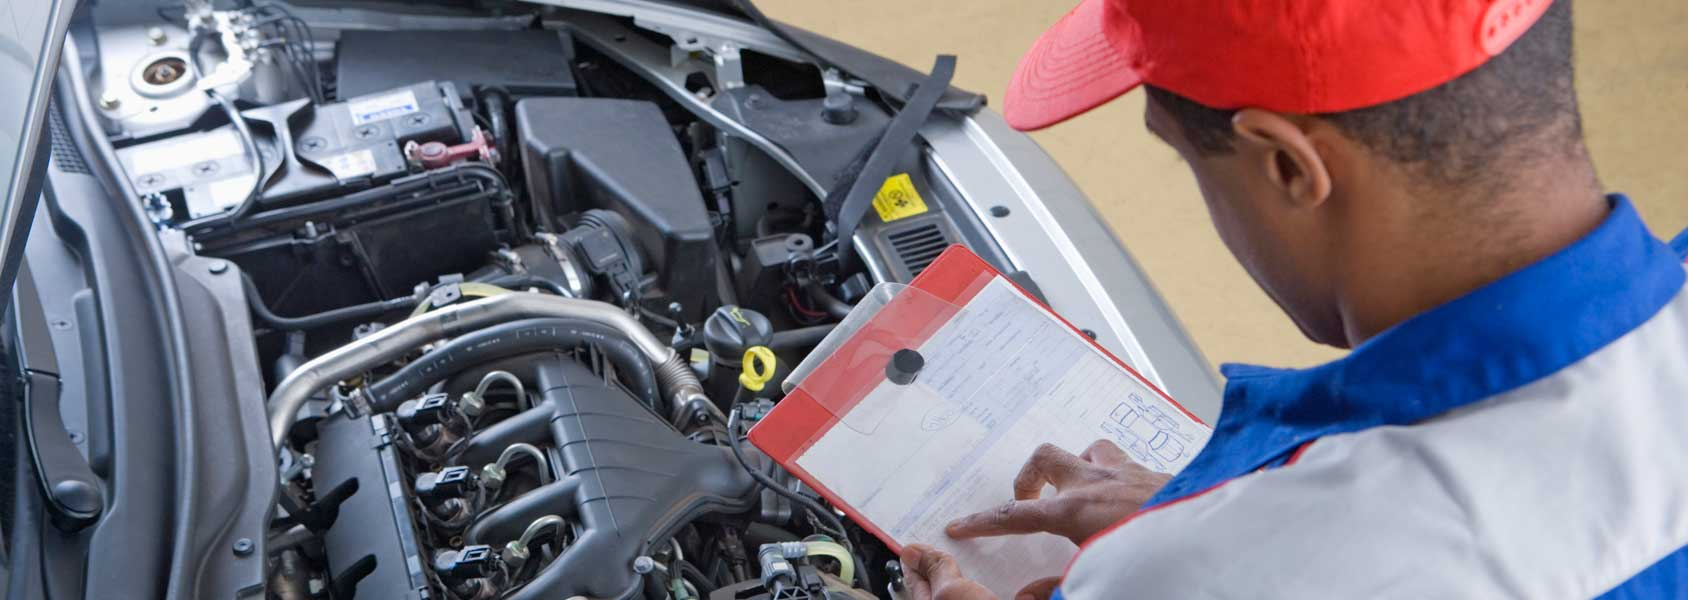 mechanic checking engine